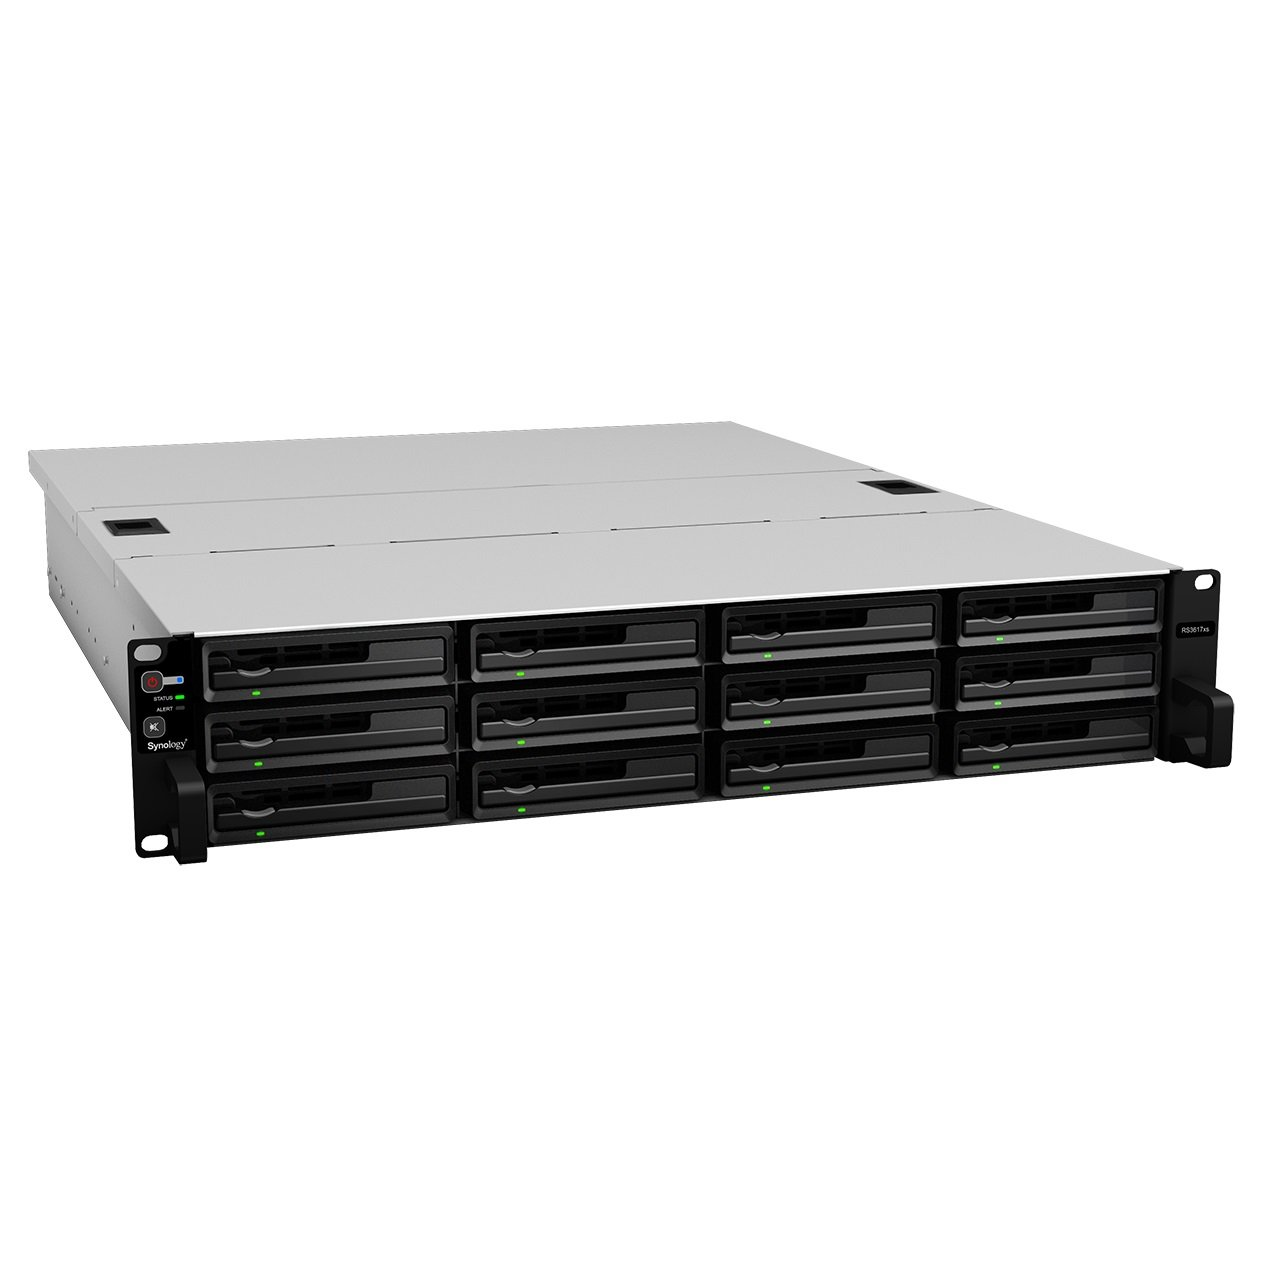 Synology RS3617xs NAS RackStation (Diskless)